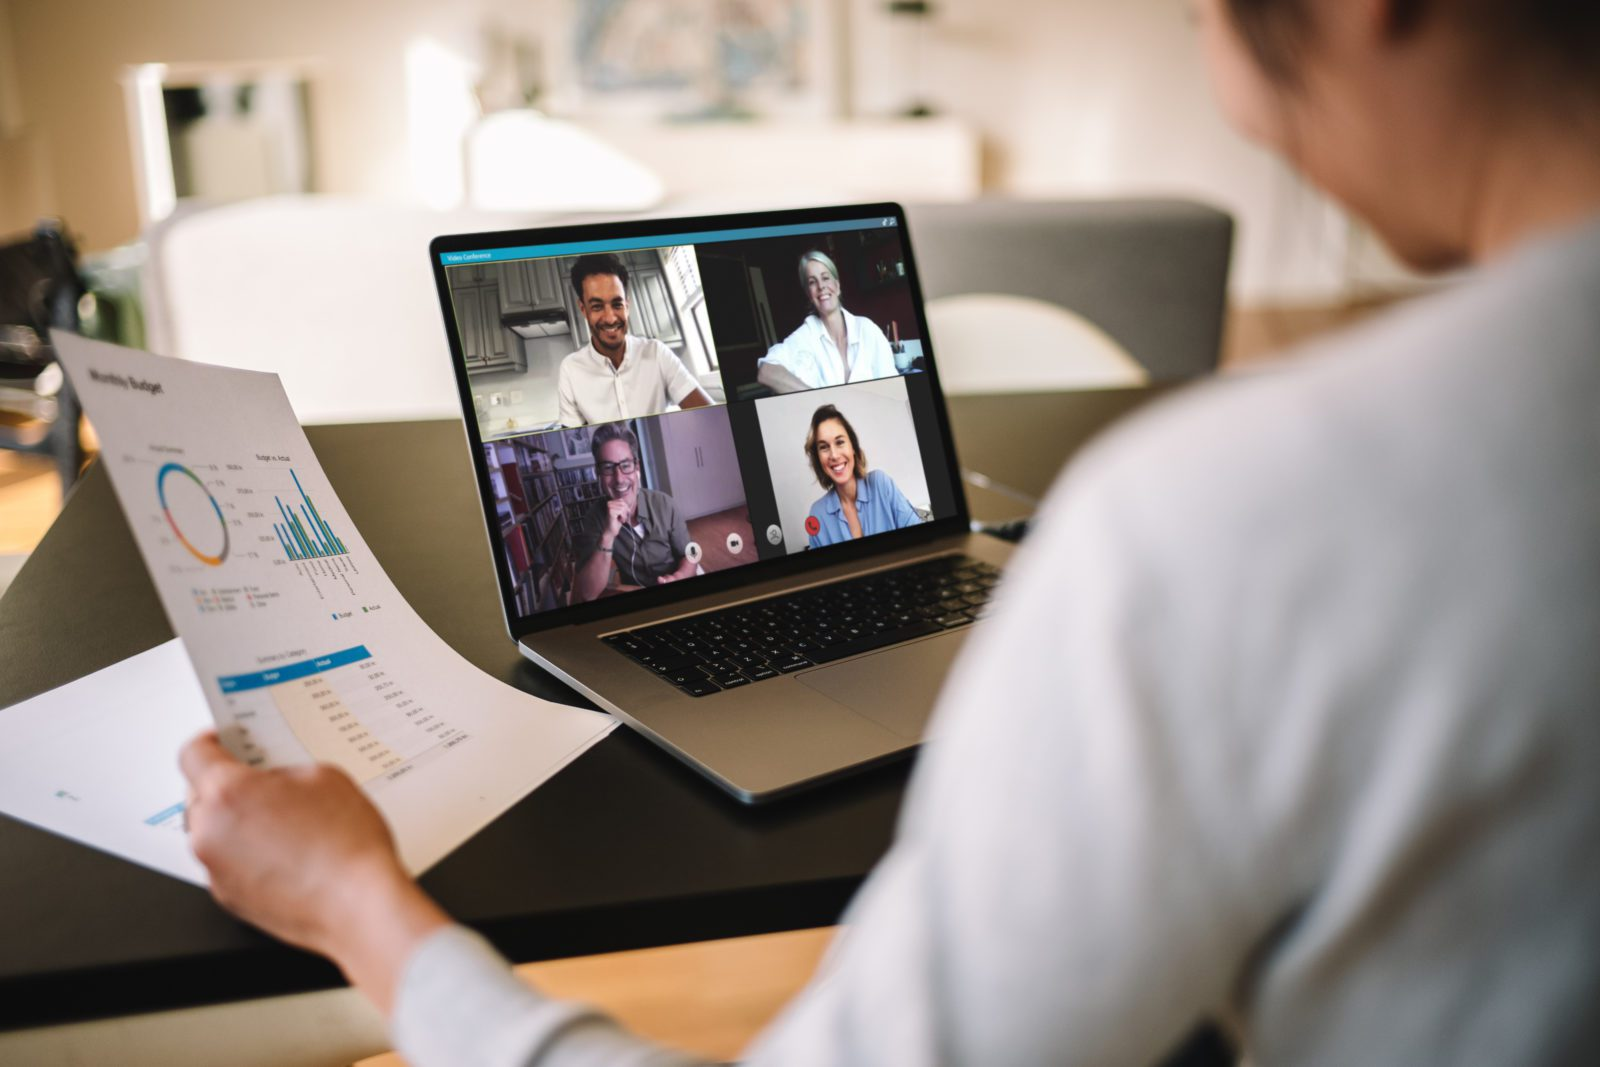 business web conferencing, Improve your business web conferencing with these 5 steps